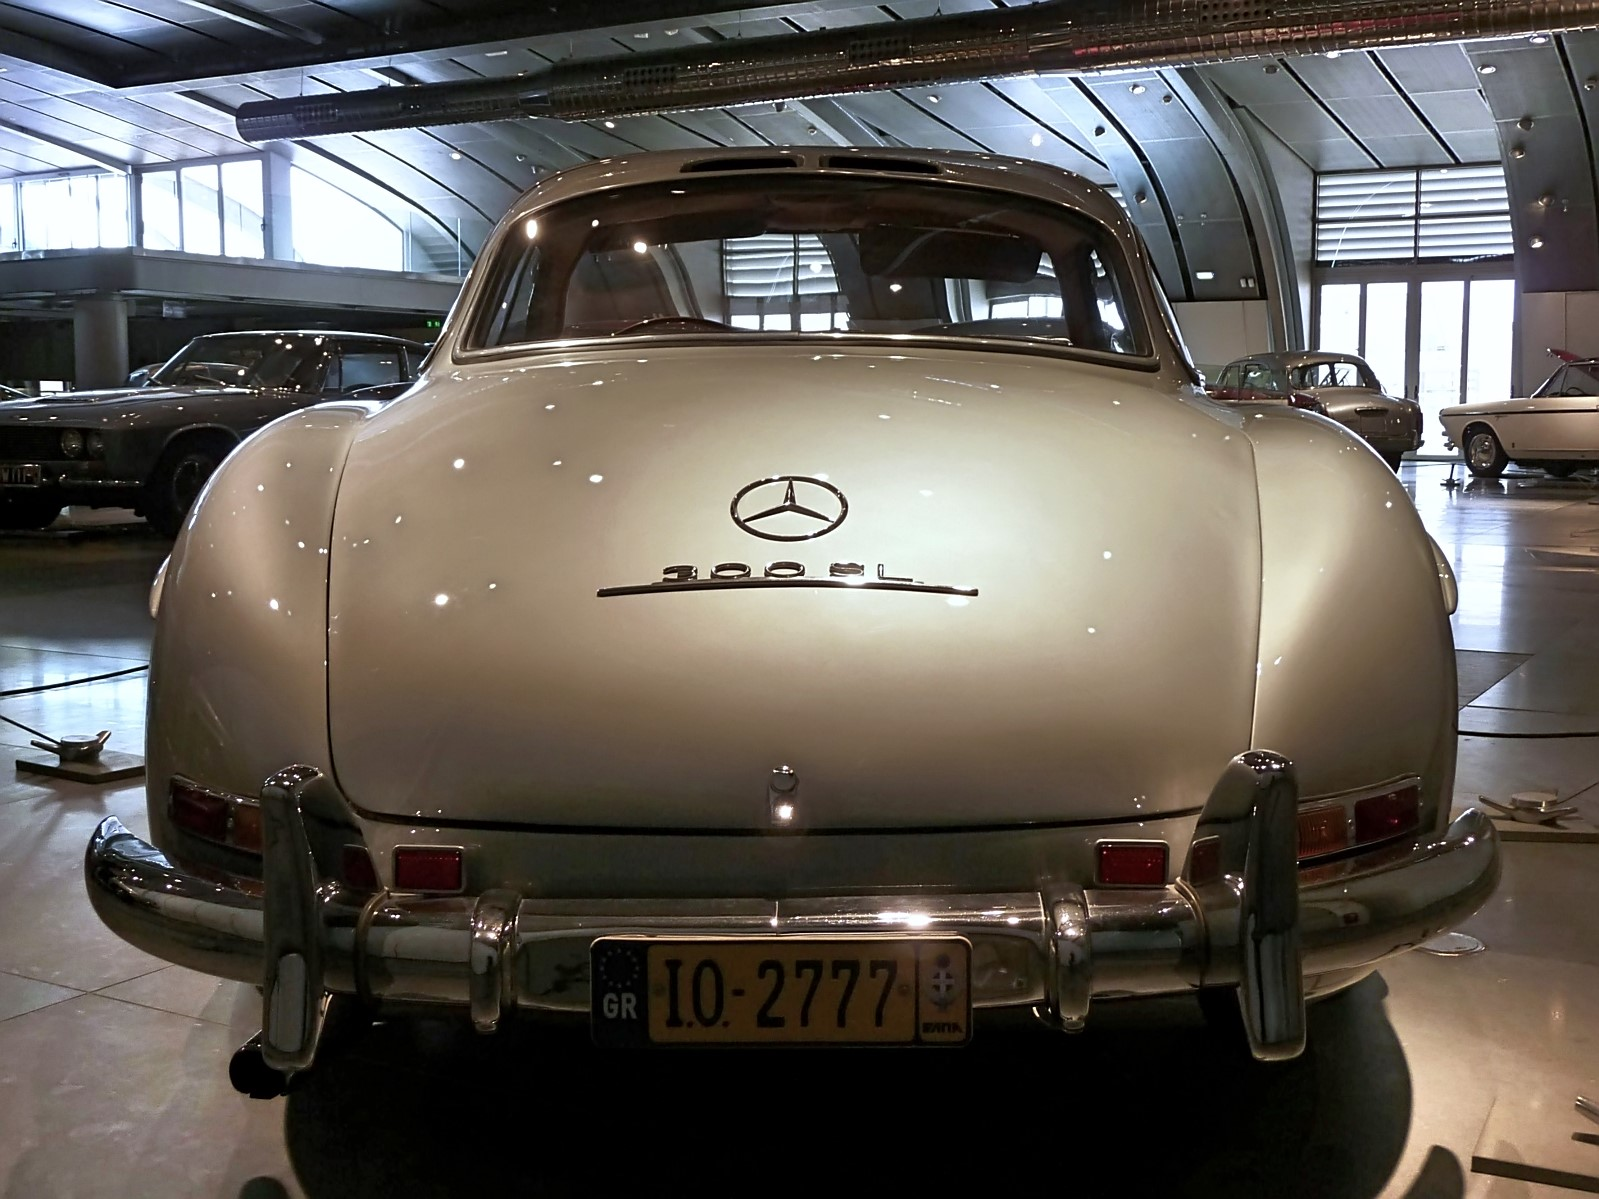 1954 Mercedes-Benz 300SL Gullwing ex.Paul Newman (2)